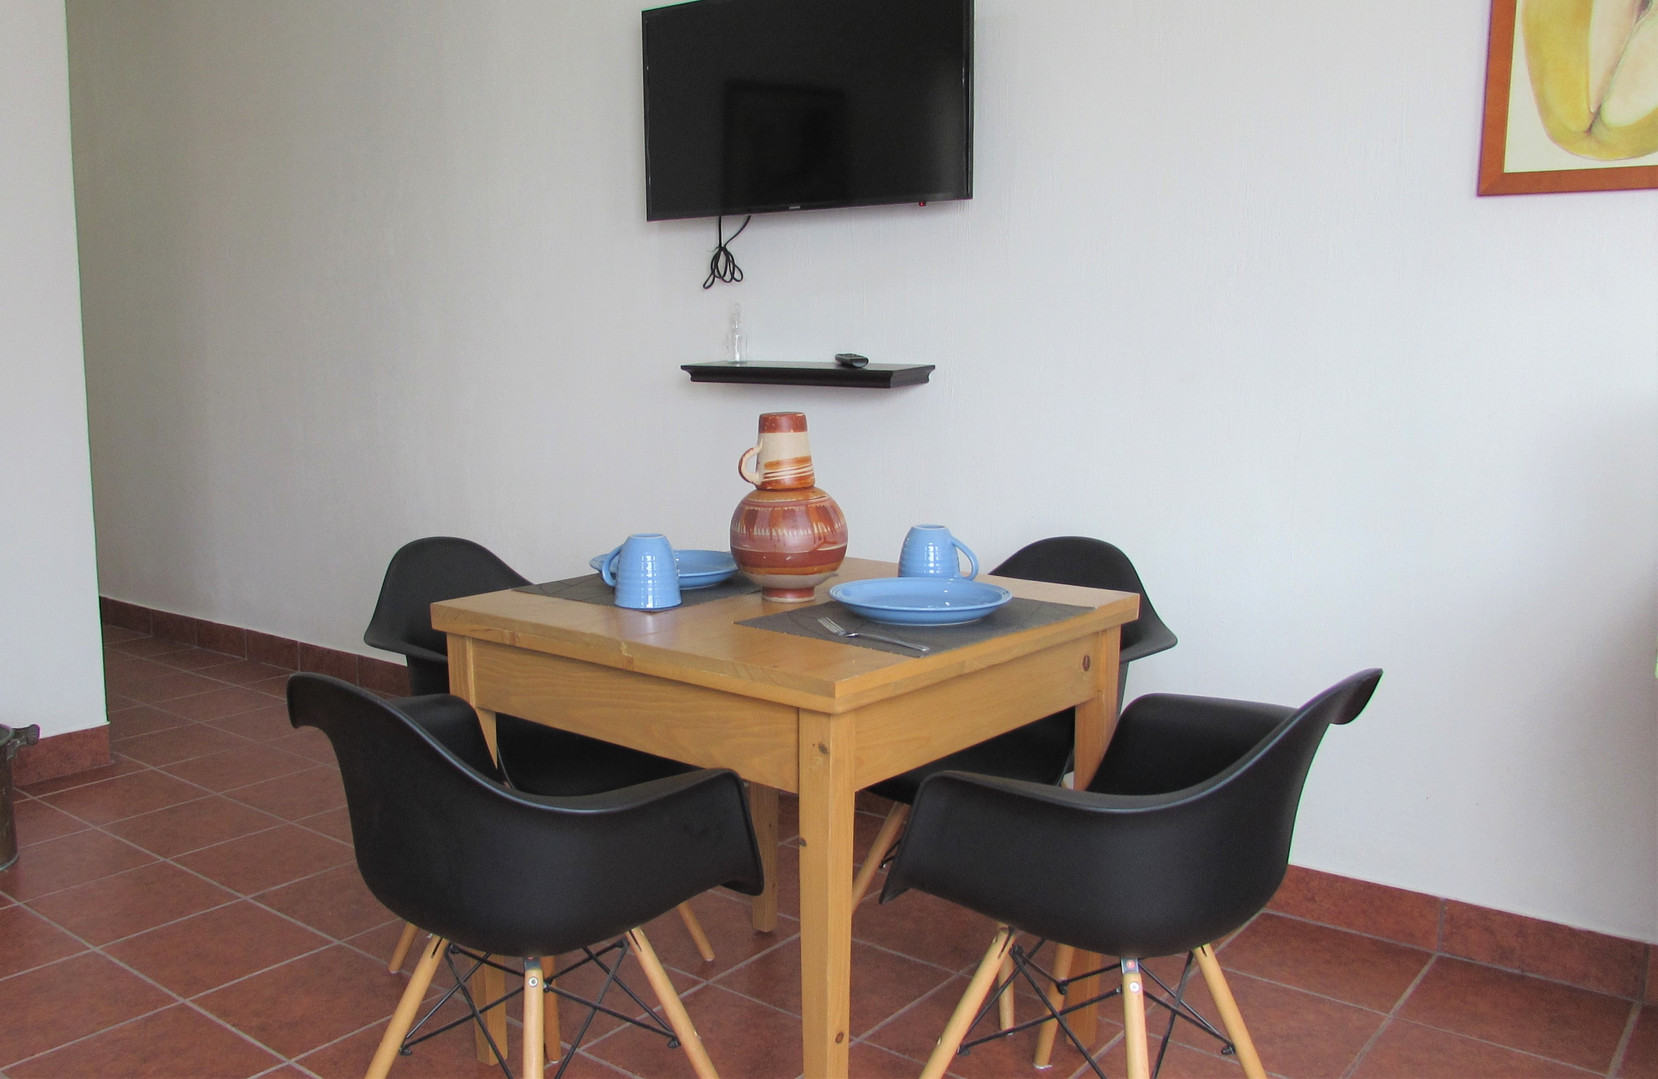 Dining table + Screen TV